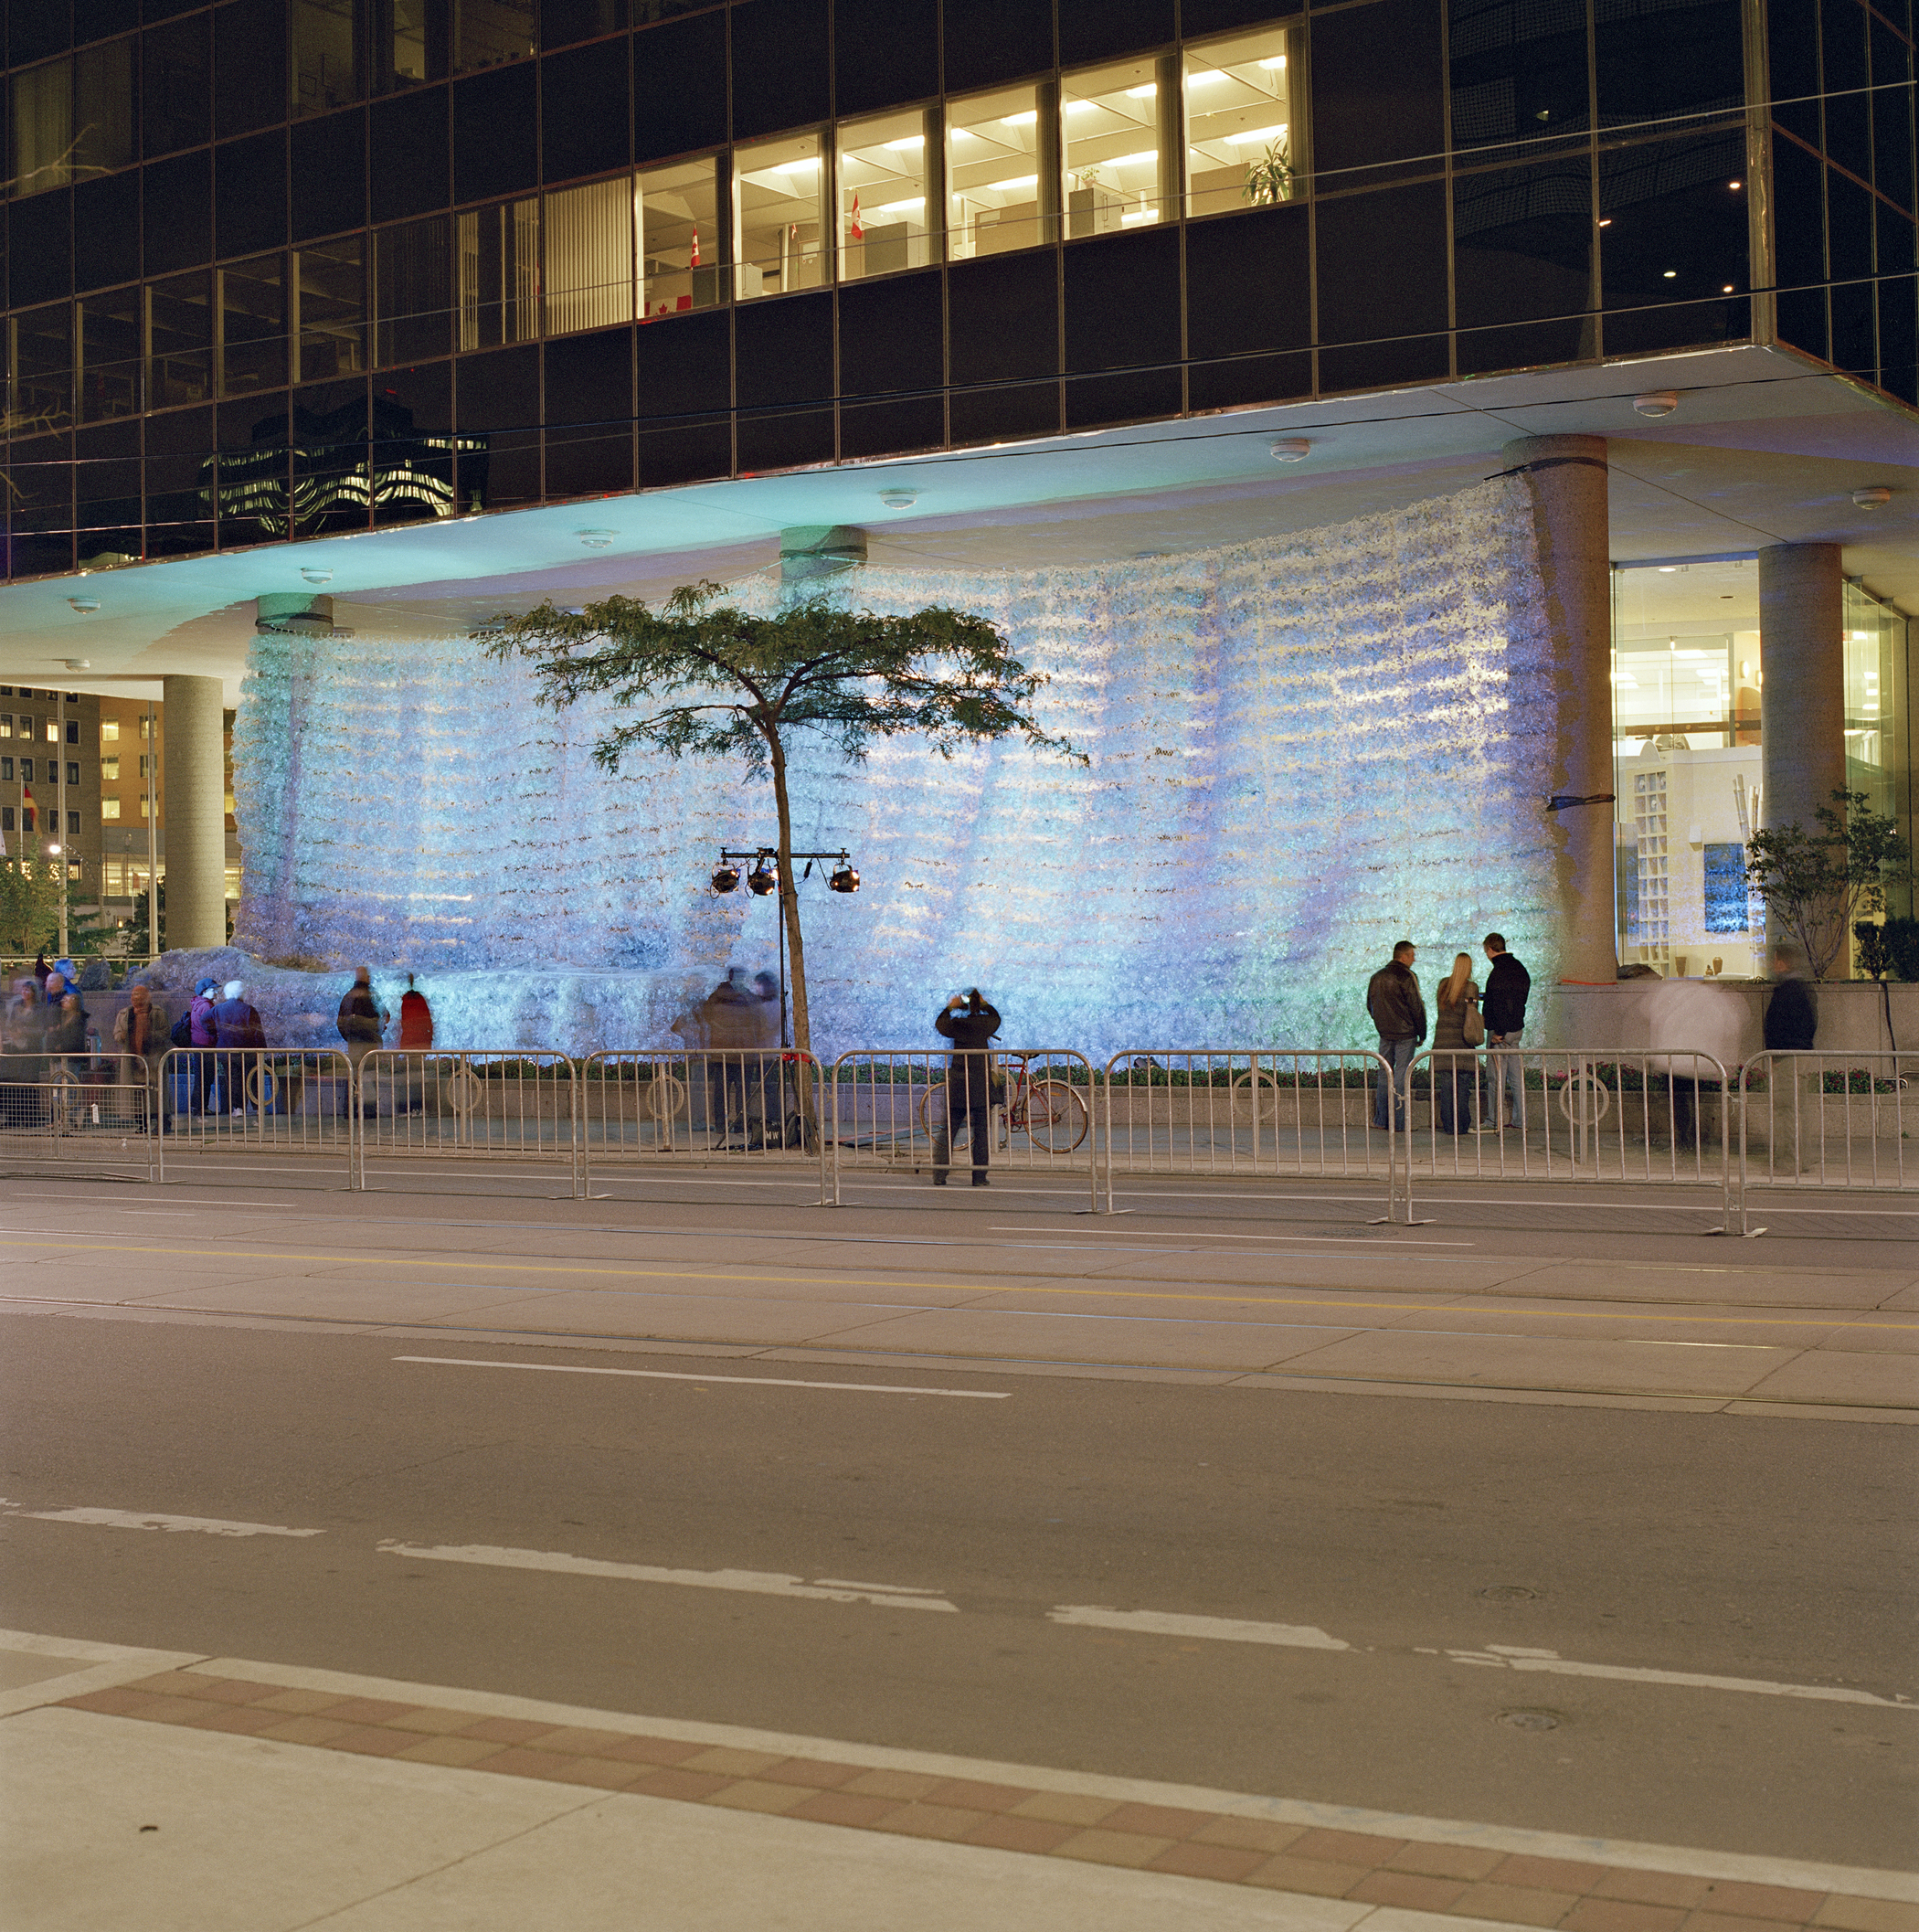 Waterfall street view 2008 6000 lbs of recycled water bottles, hockey netting, aircraft cable, 30x74x20ft (College St and University Ave, Toronto) Commissioned by Scotiabank Nuit Blanche photo by Peter MacCallum